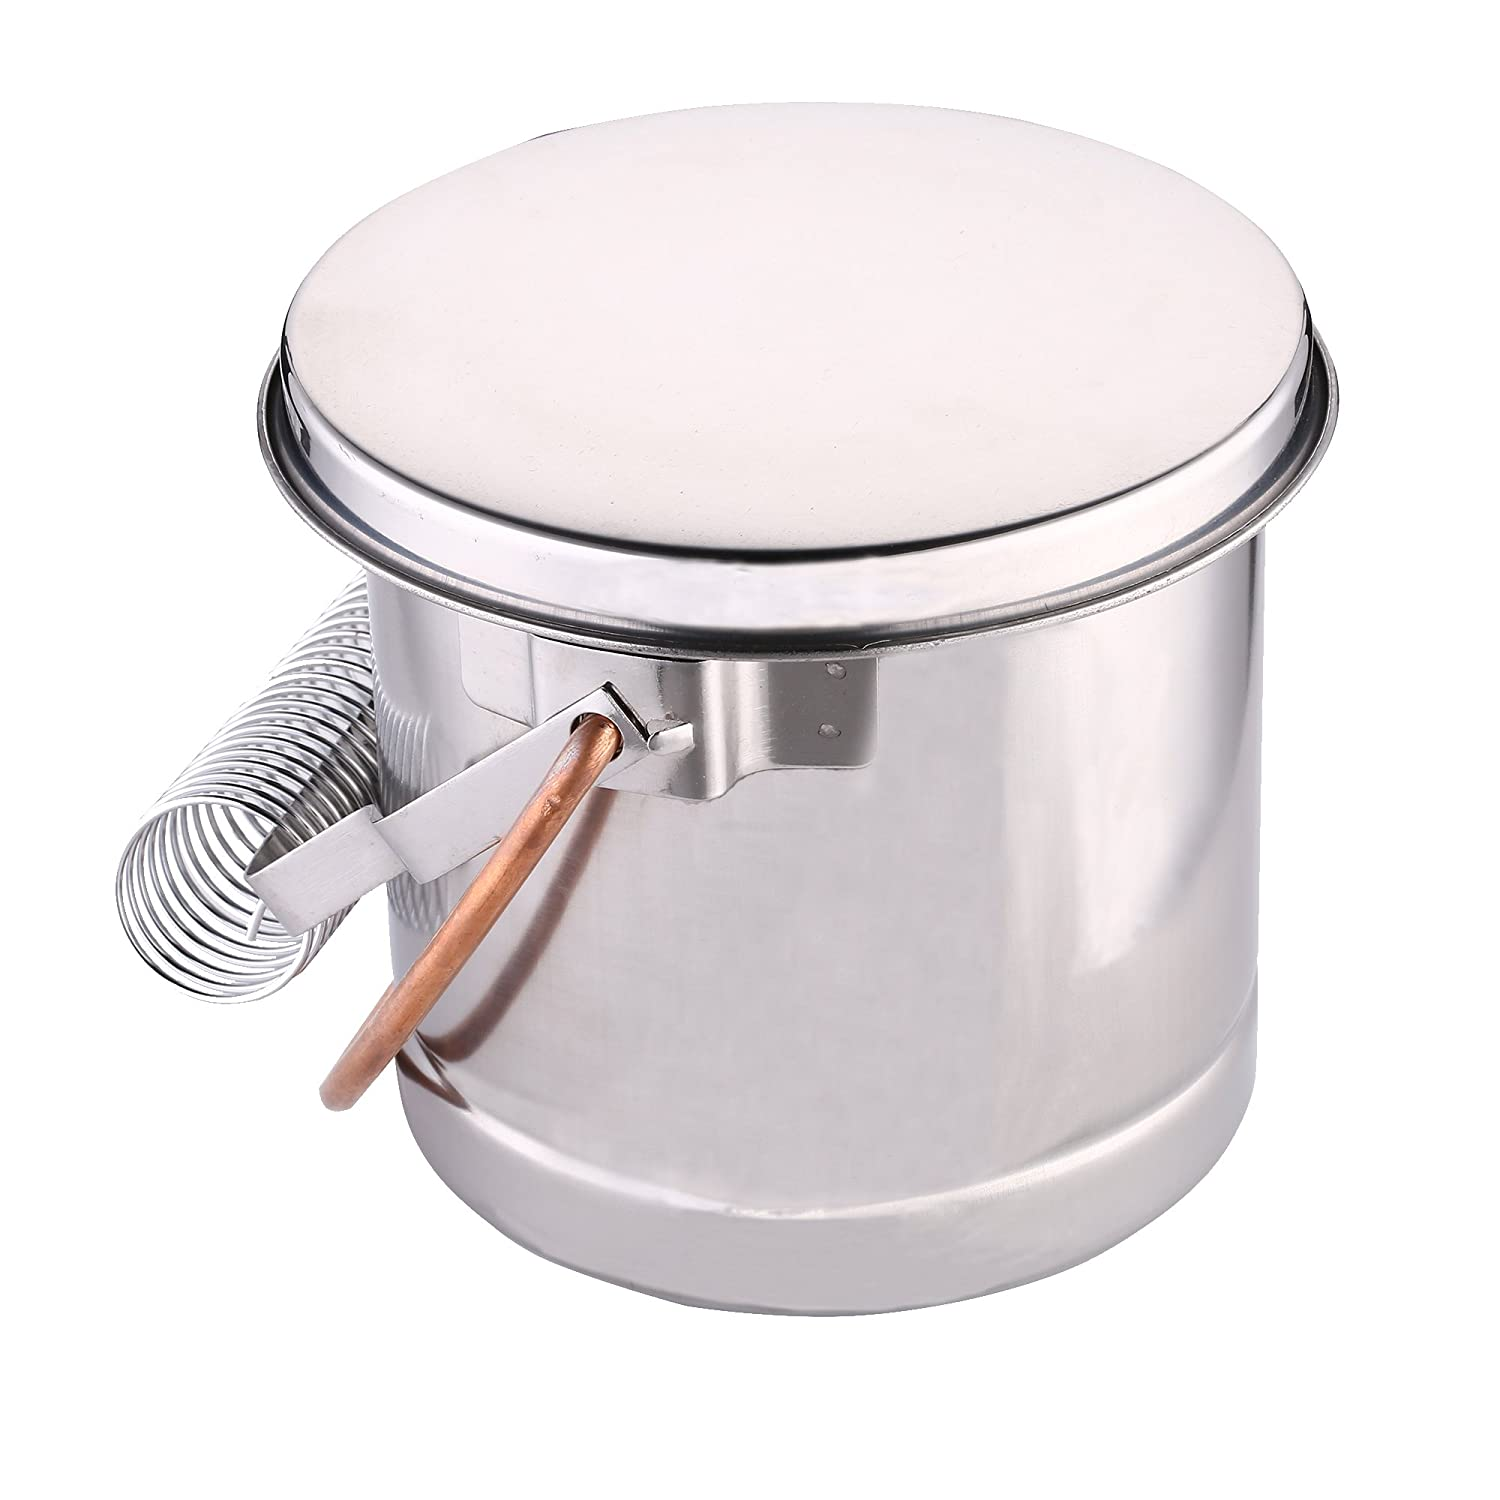 What's Fun Extra Large Portable Brush Washer, Stainless Paint Brushes Cleaner with Wash Tank & Removable Screen What's Fun 4336974169